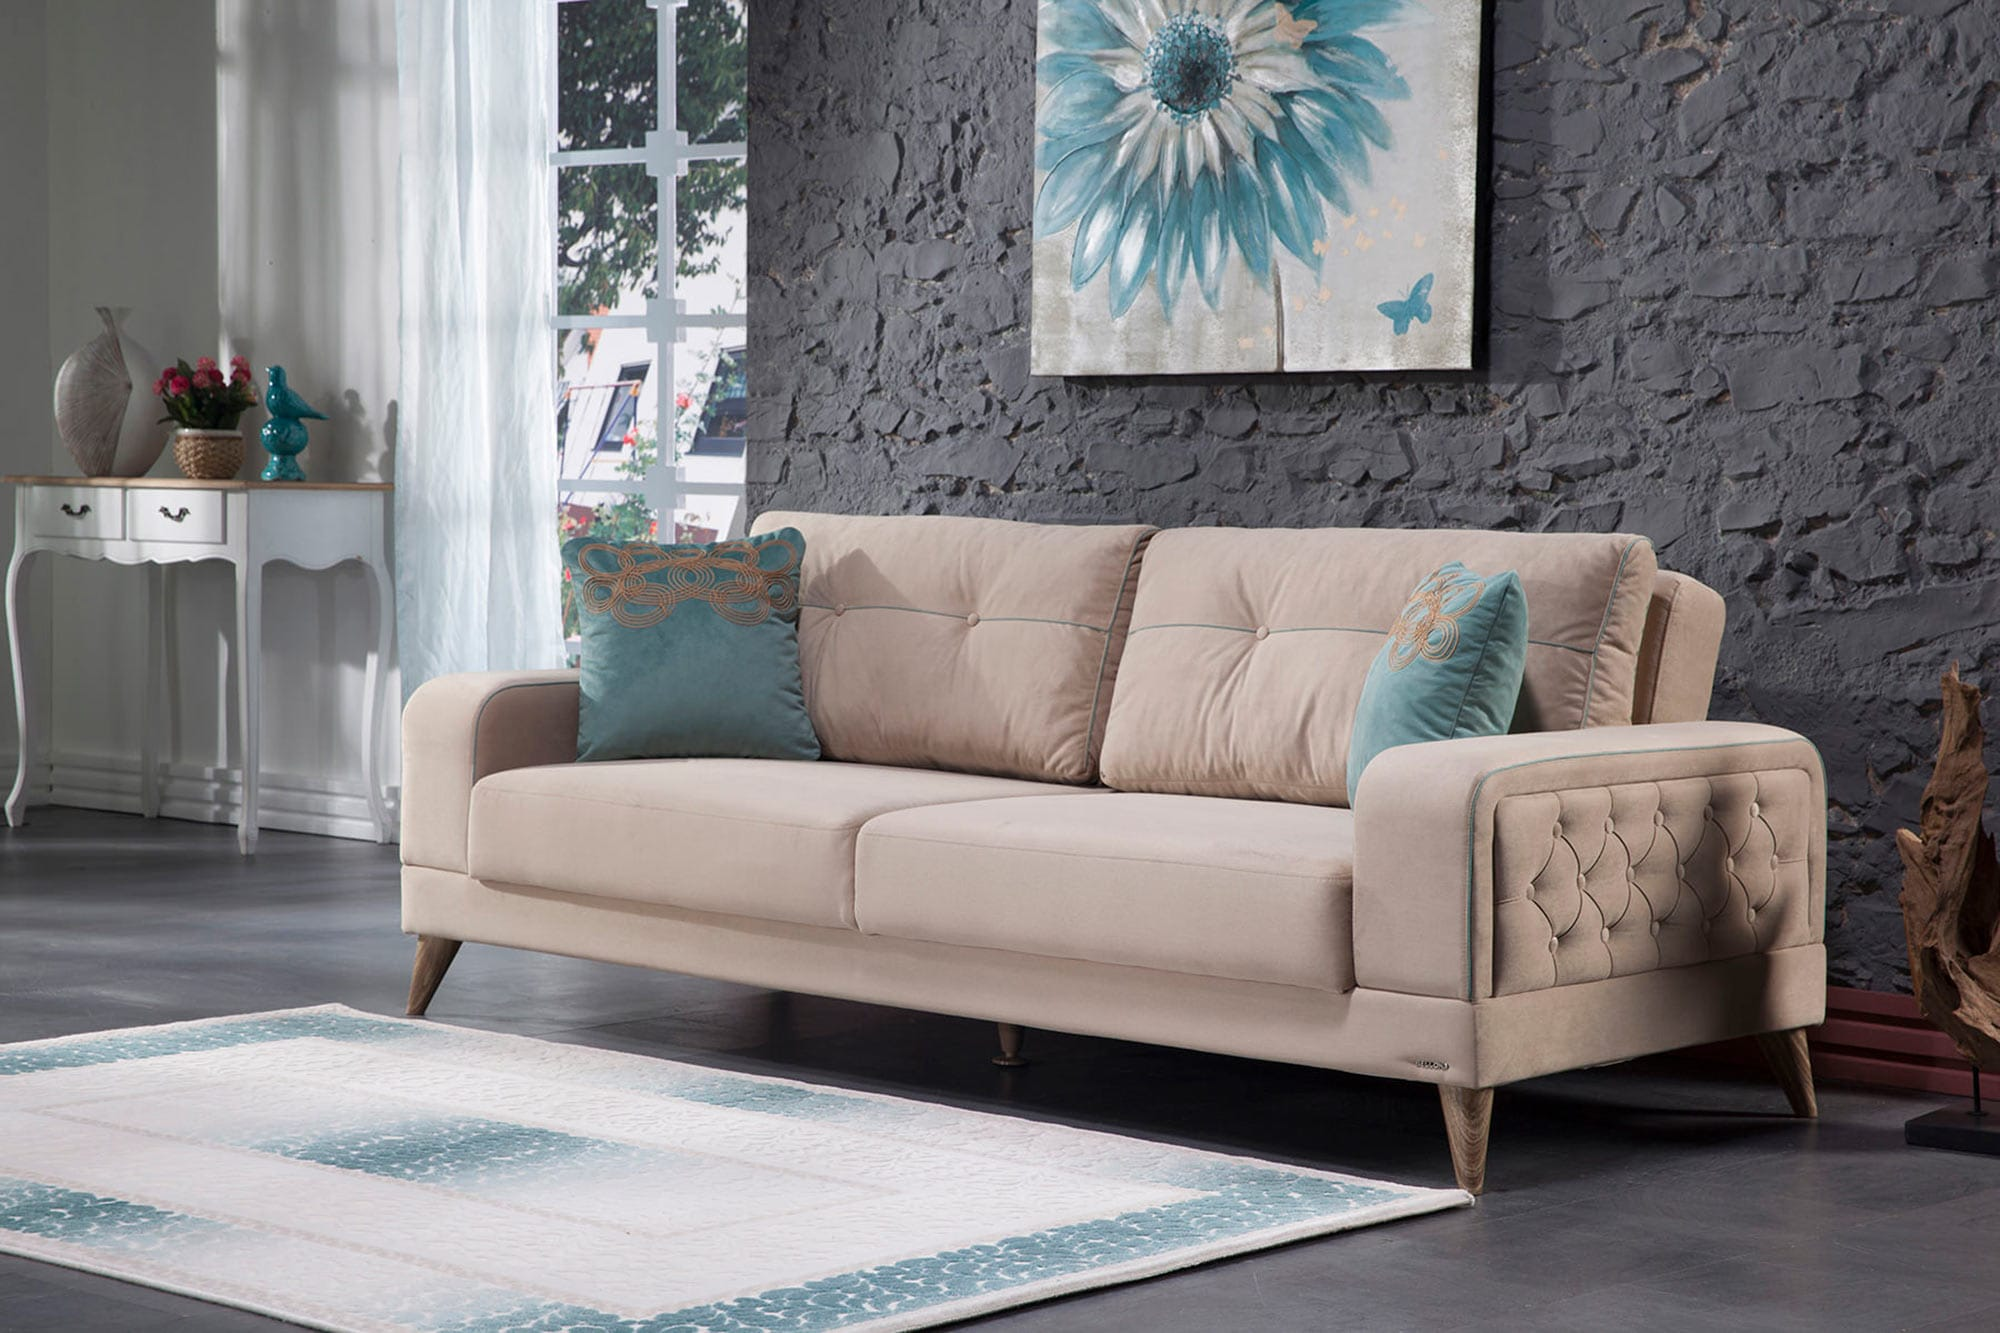 Vienza Lilyum Cream Convertible Sofa Bed By Istikbal Furniture